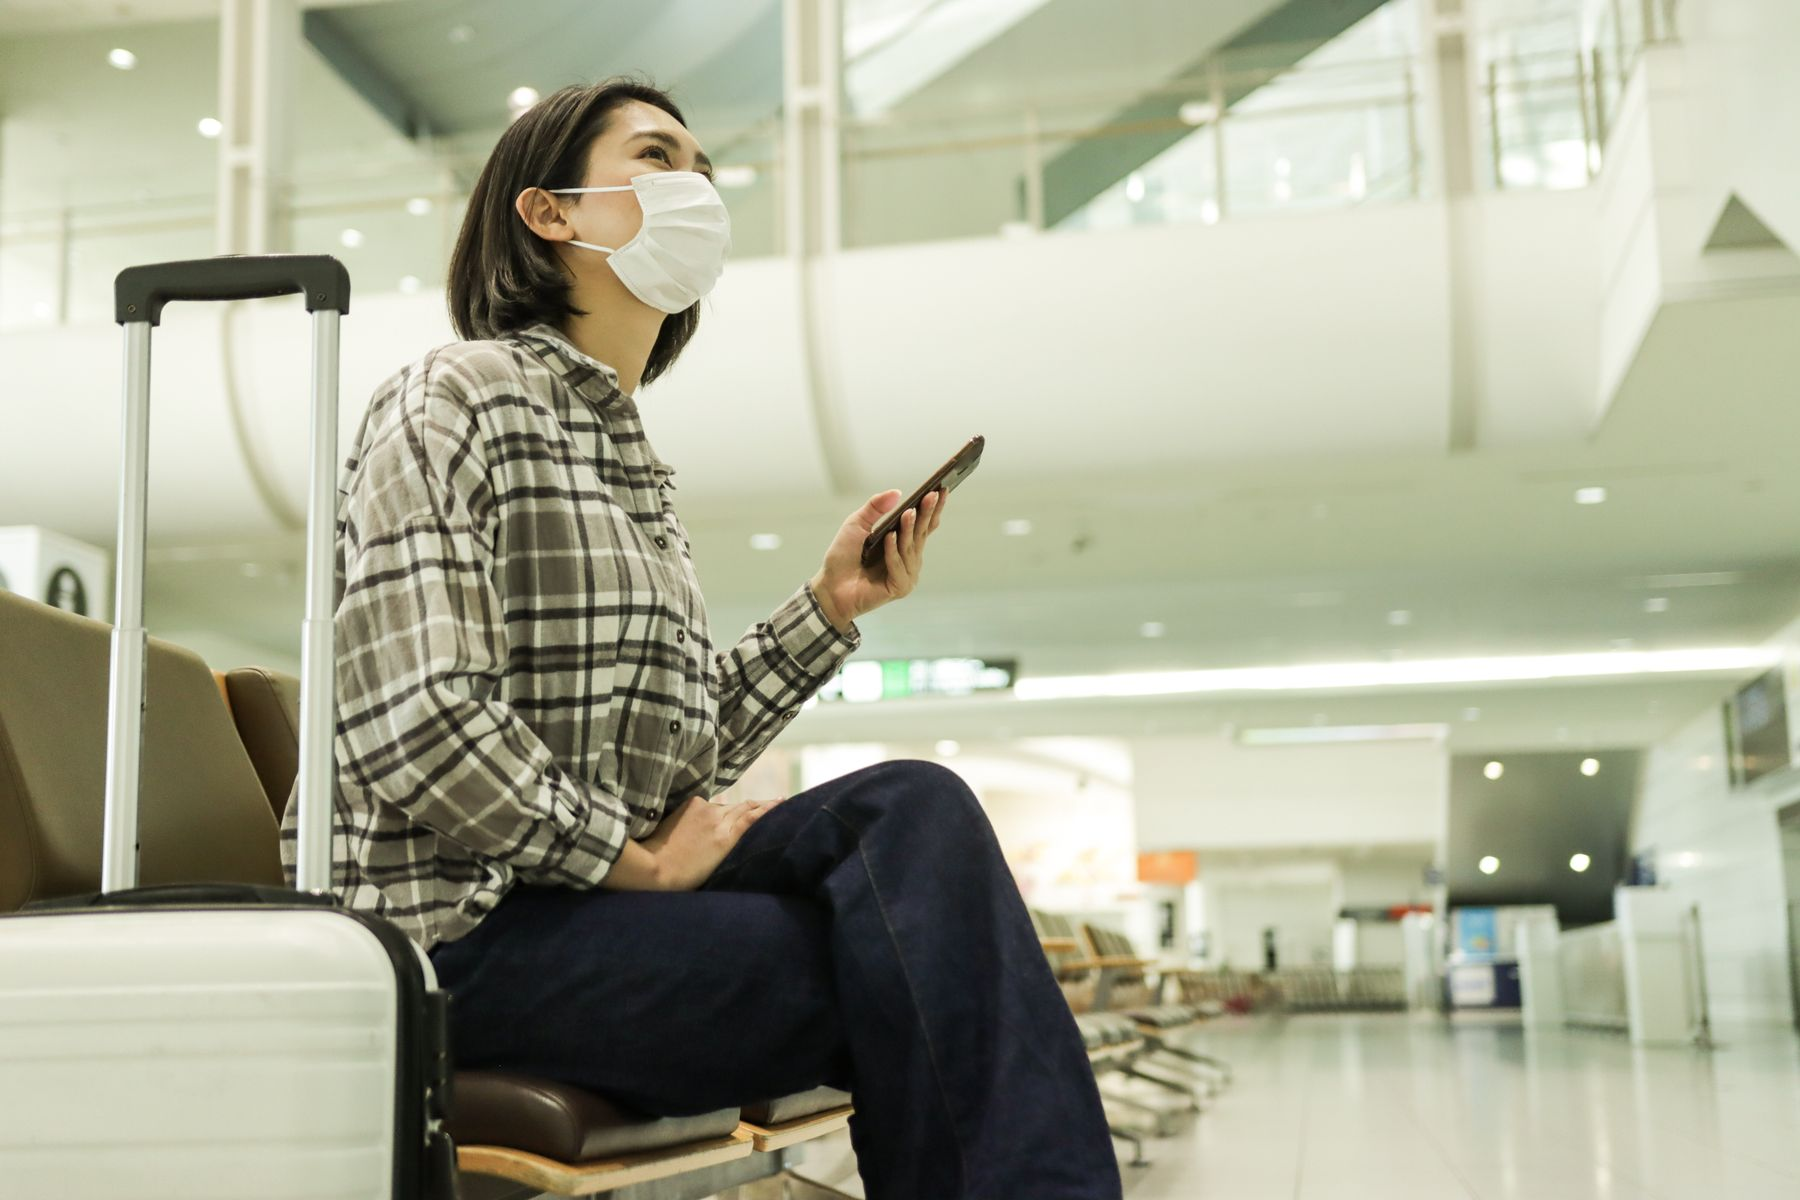 Woman wearing a mask sitting inside of an airport